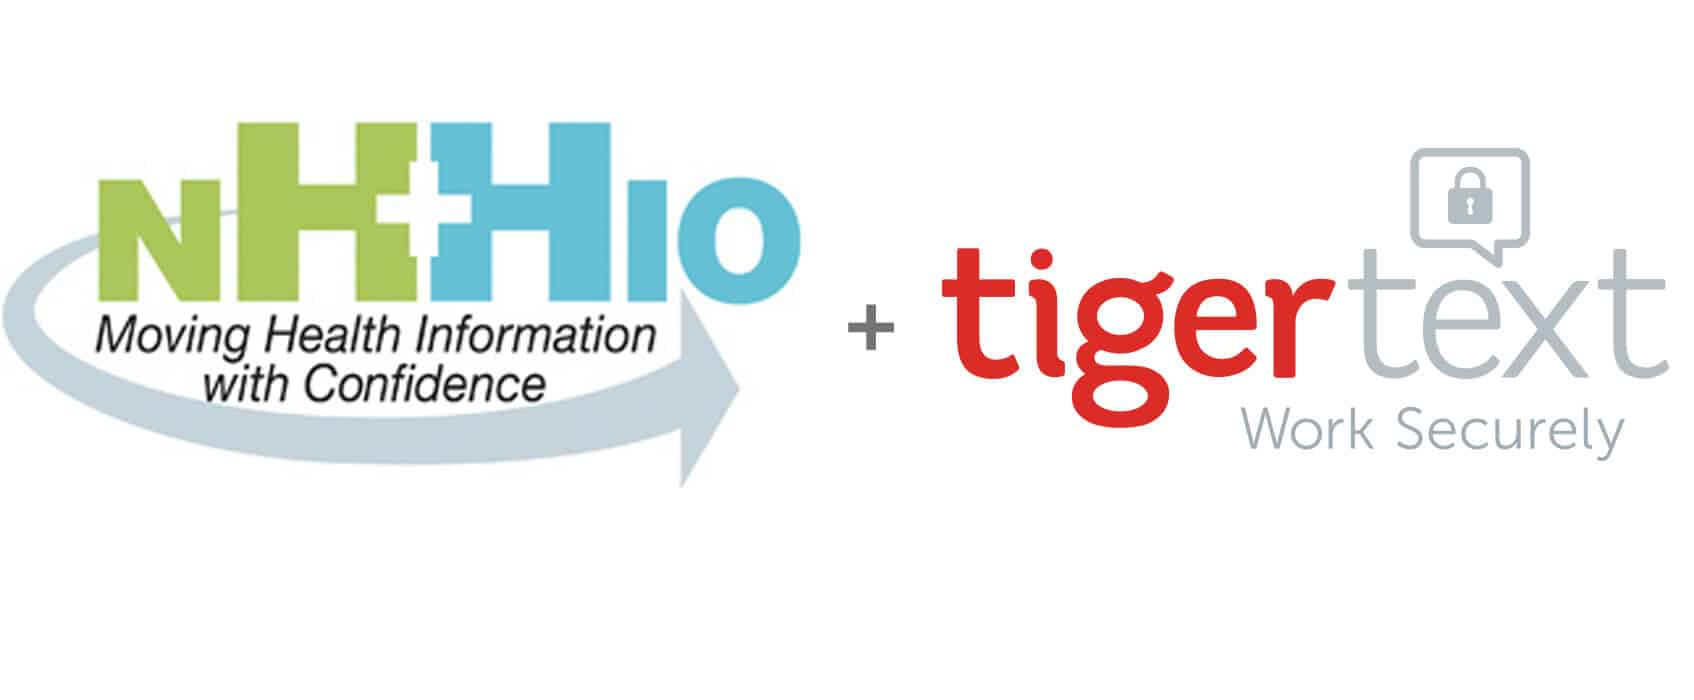 New Hampshire Health Information Organization Upgrades Communication System, Selects TigerText Secure Messaging Platform